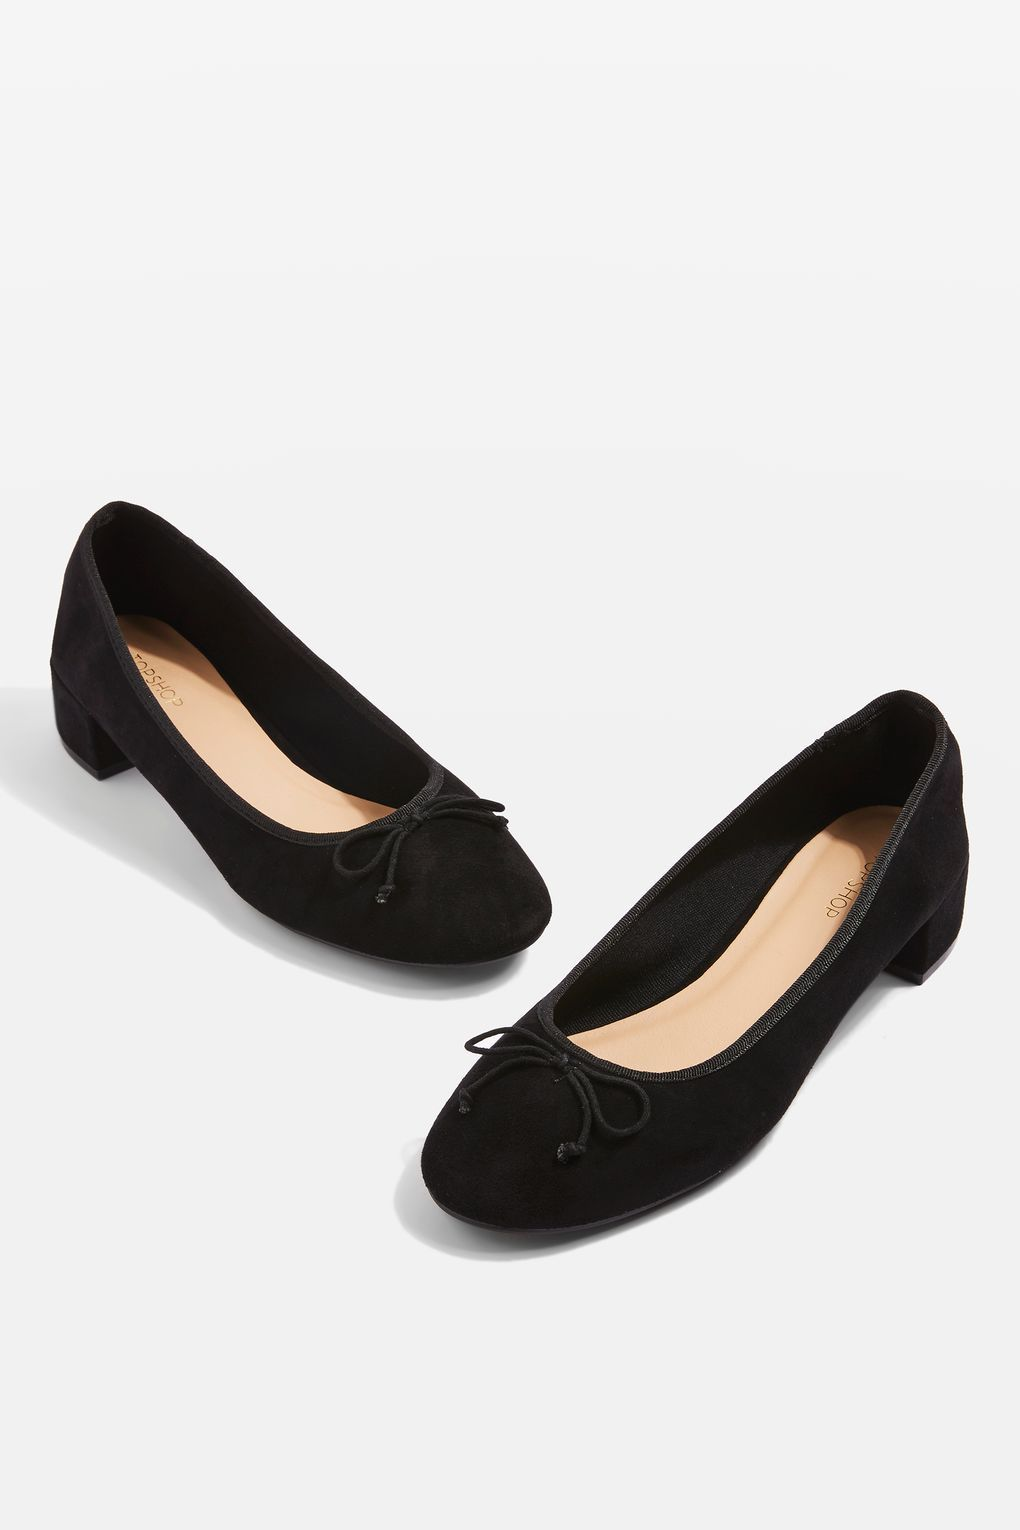 cf3a0d73eb7 GLORY Low Heel Ballerina Pumps - Shoes - Sale - Topshop Europe